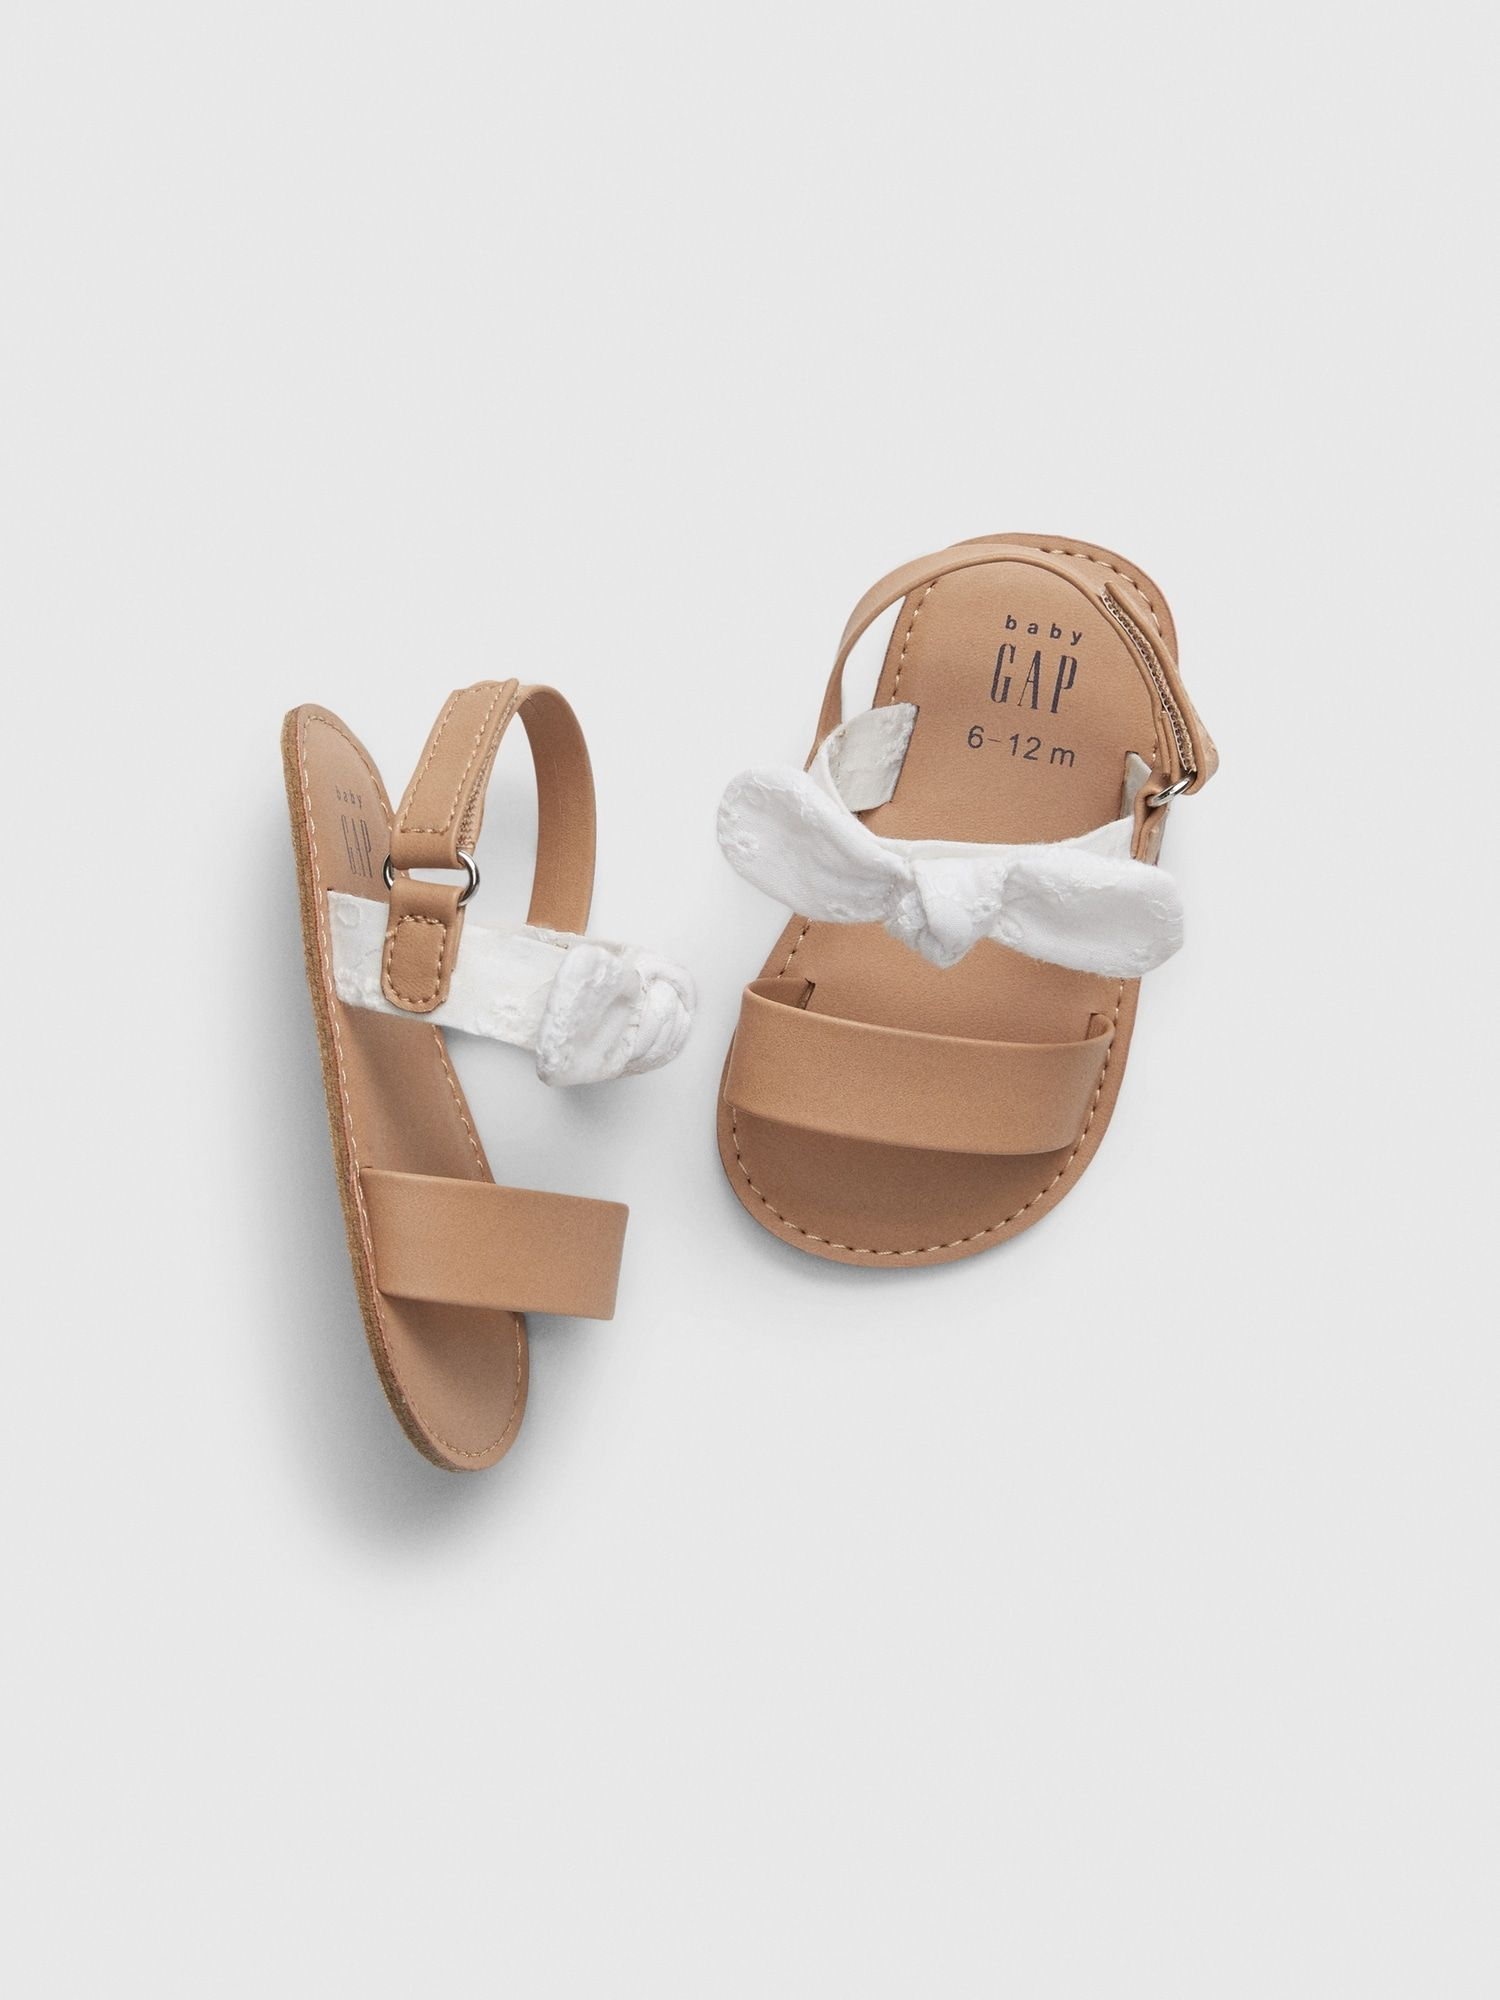 Cross-Strap Sandals Flats Shoes GAP Baby Girls Size 3-6 Months White Bow